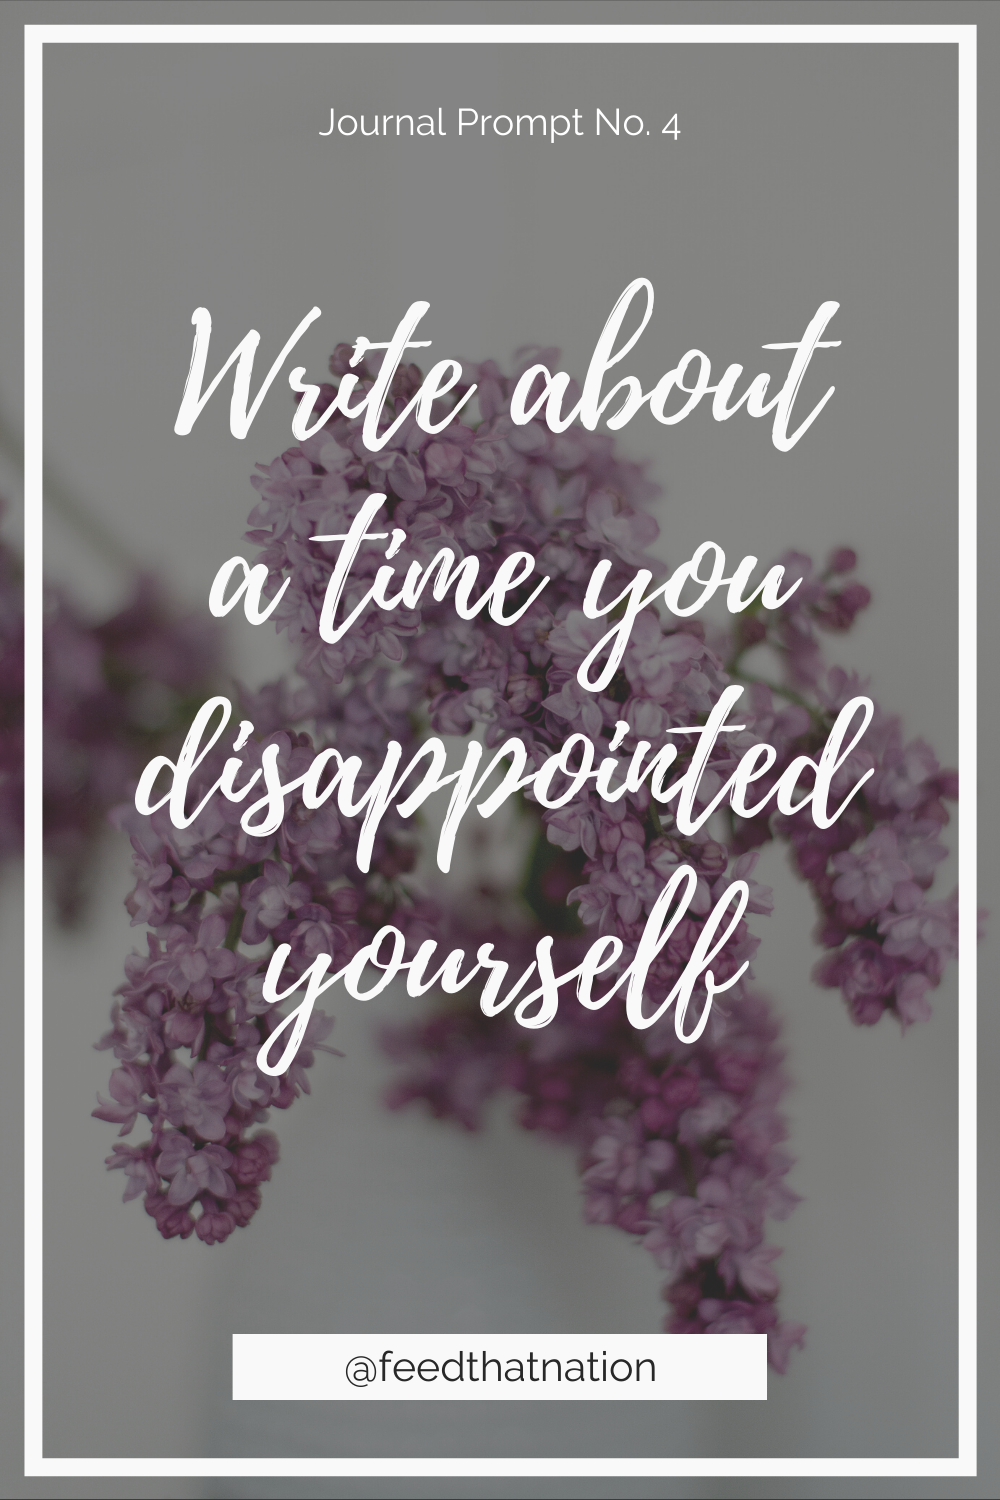 Write about a time you disappointed yourself